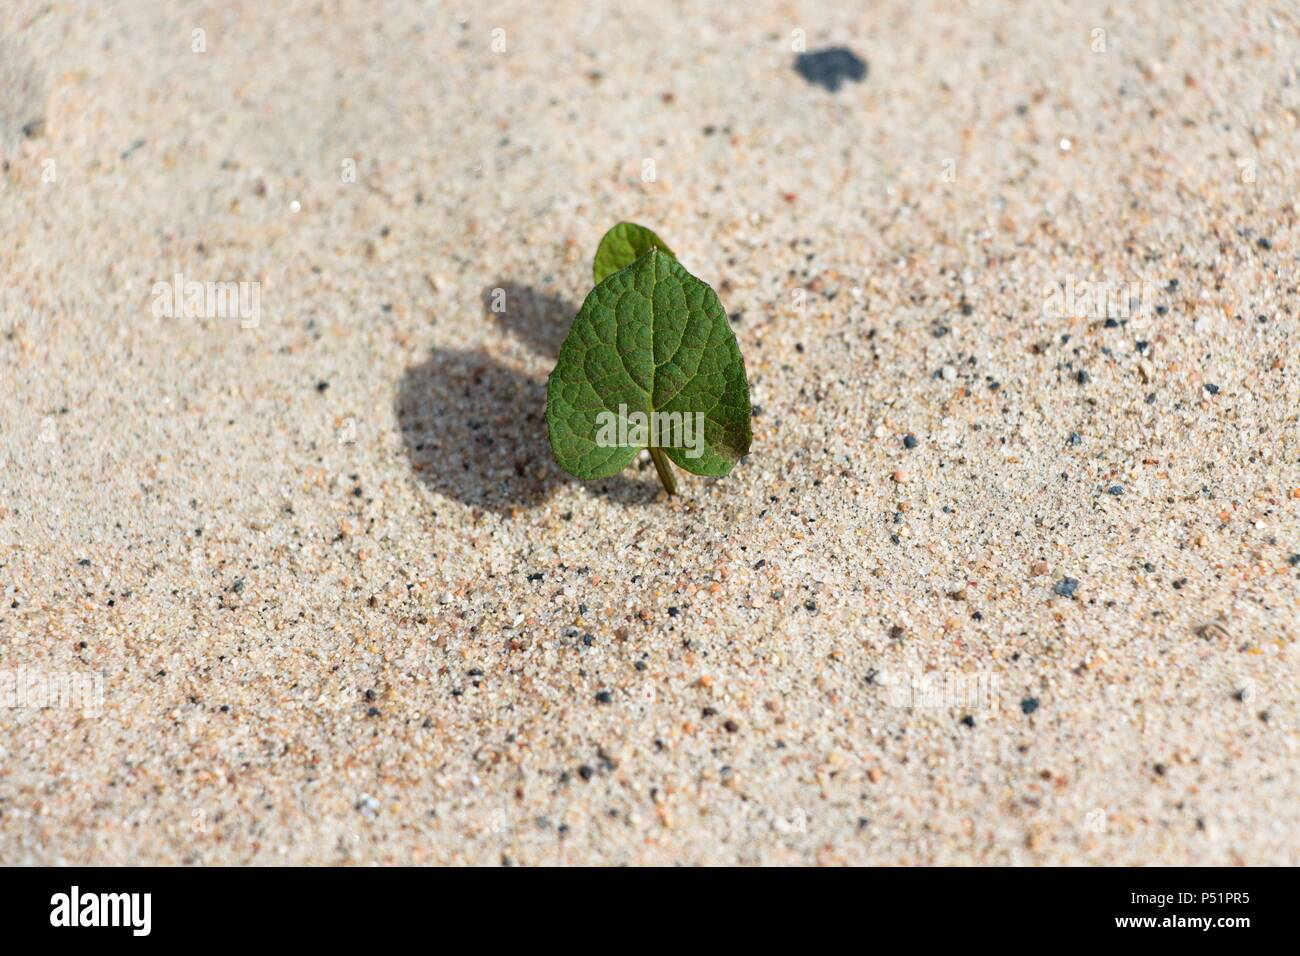 A small plant that sprouts in dry sand. Despite the lack of living conditions, it grows with zeal under the hot sun. - Stock Image